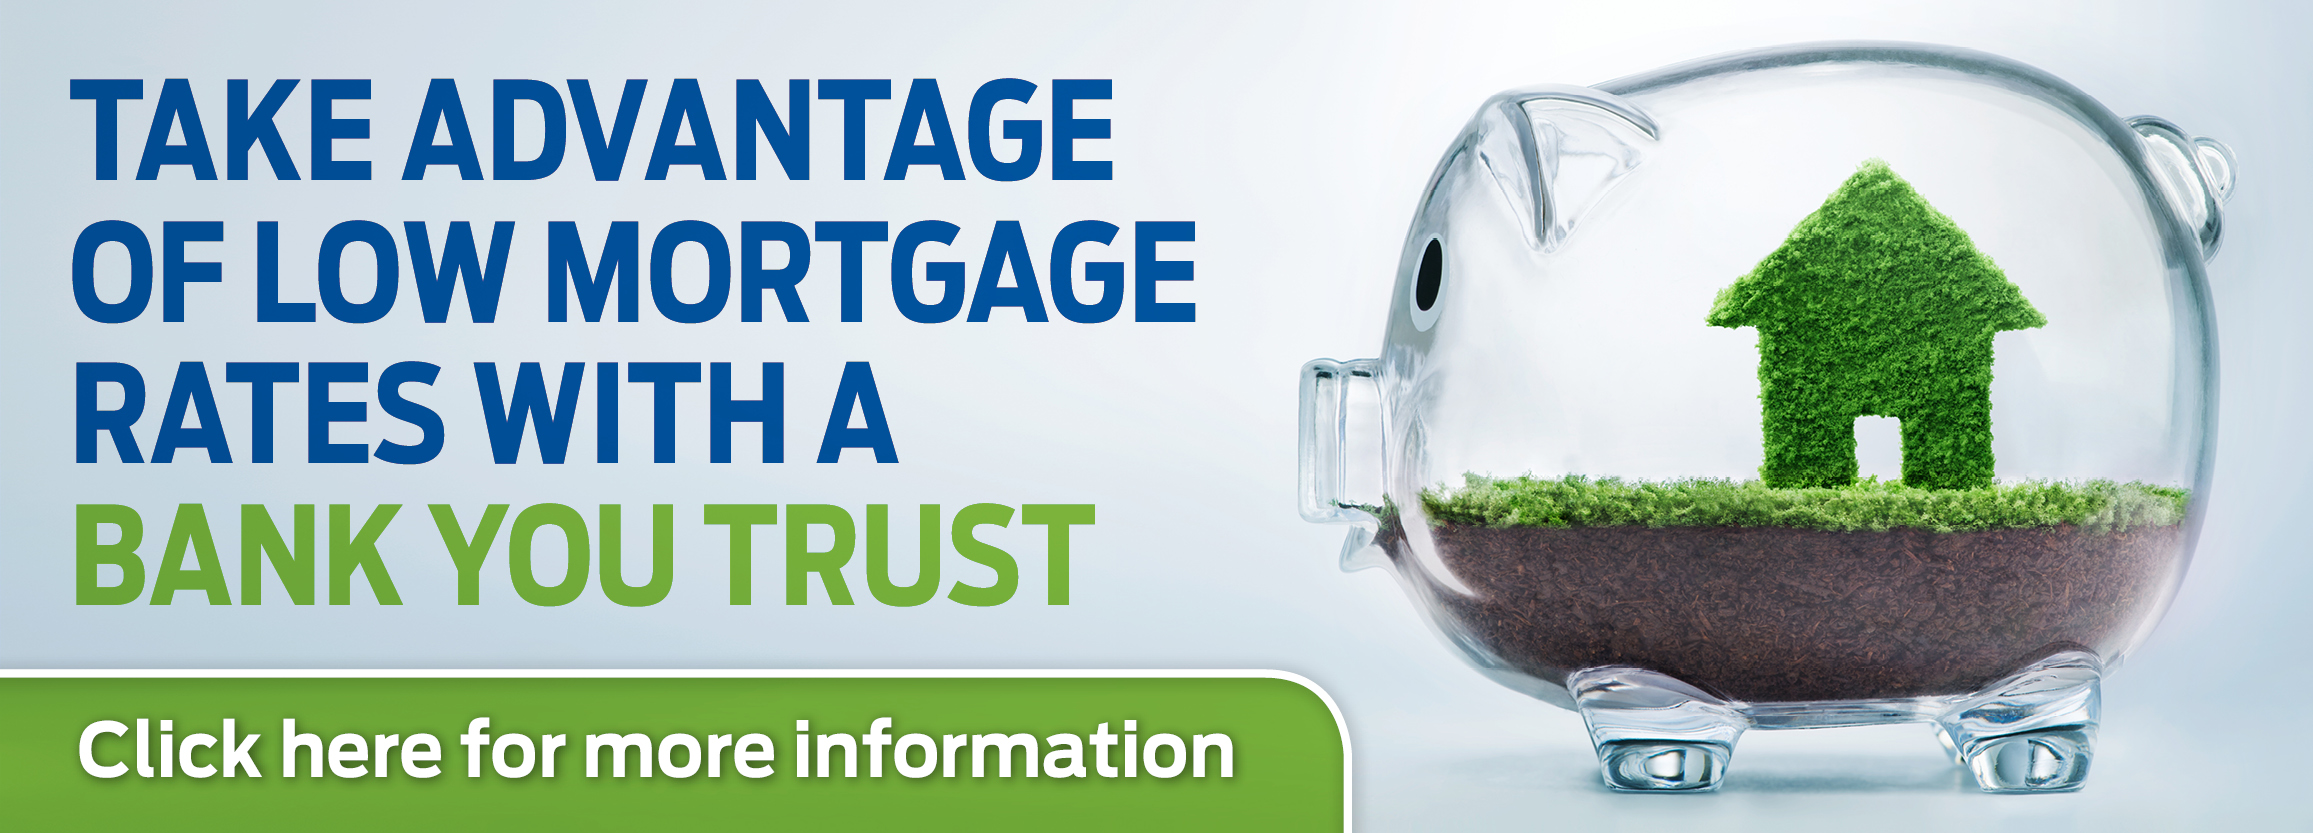 Low mortgage rates web banner